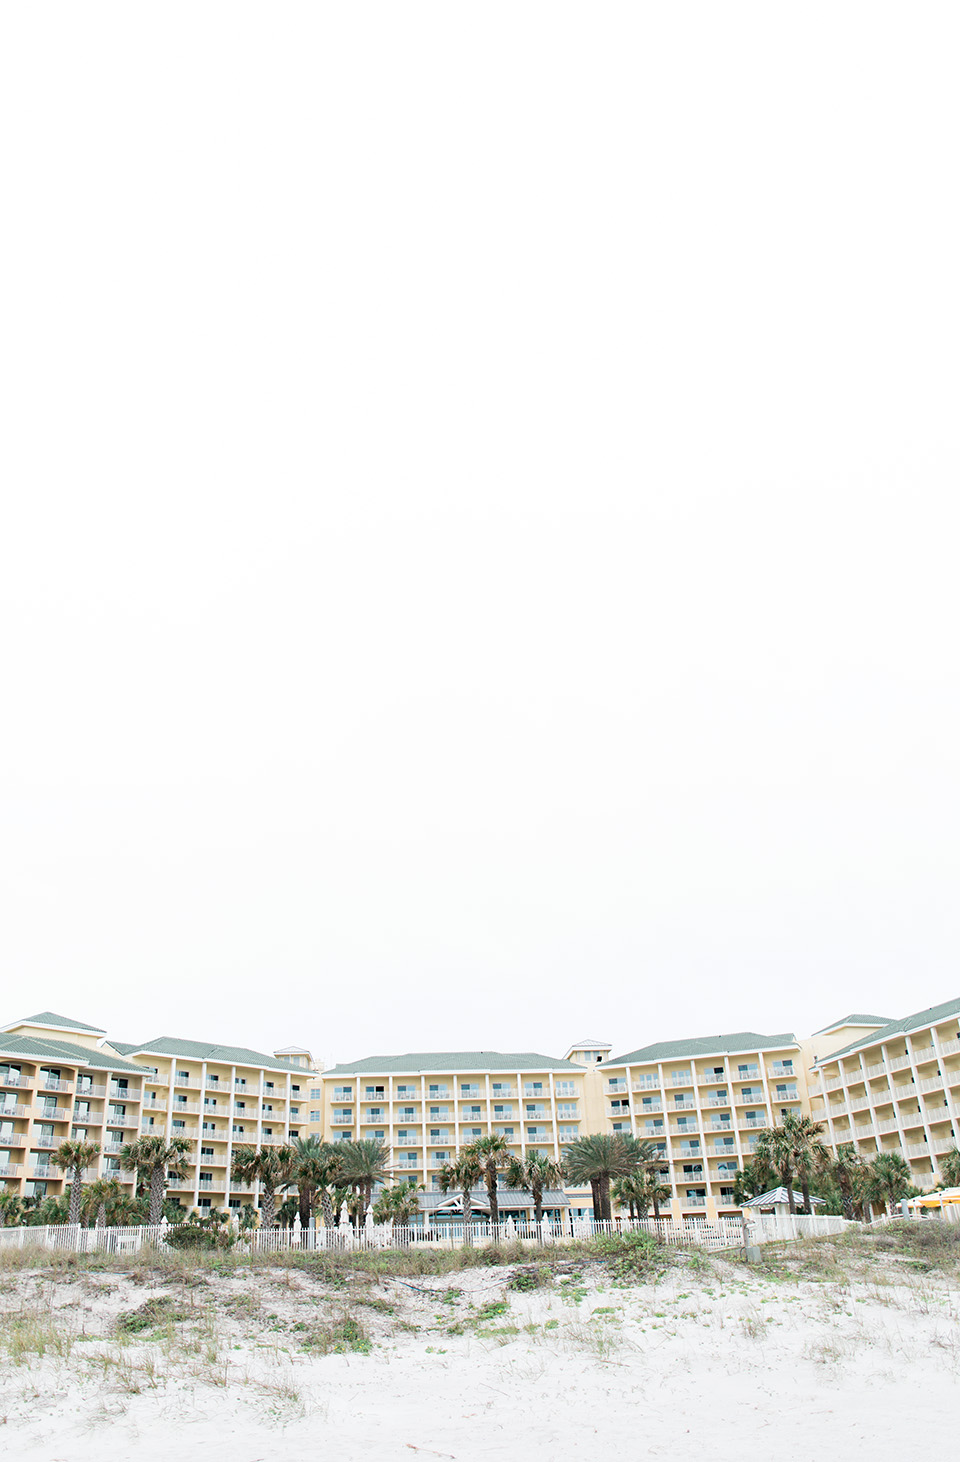 This is an image of the beachfront side of the Omni Amelia Island Plantation Resort.